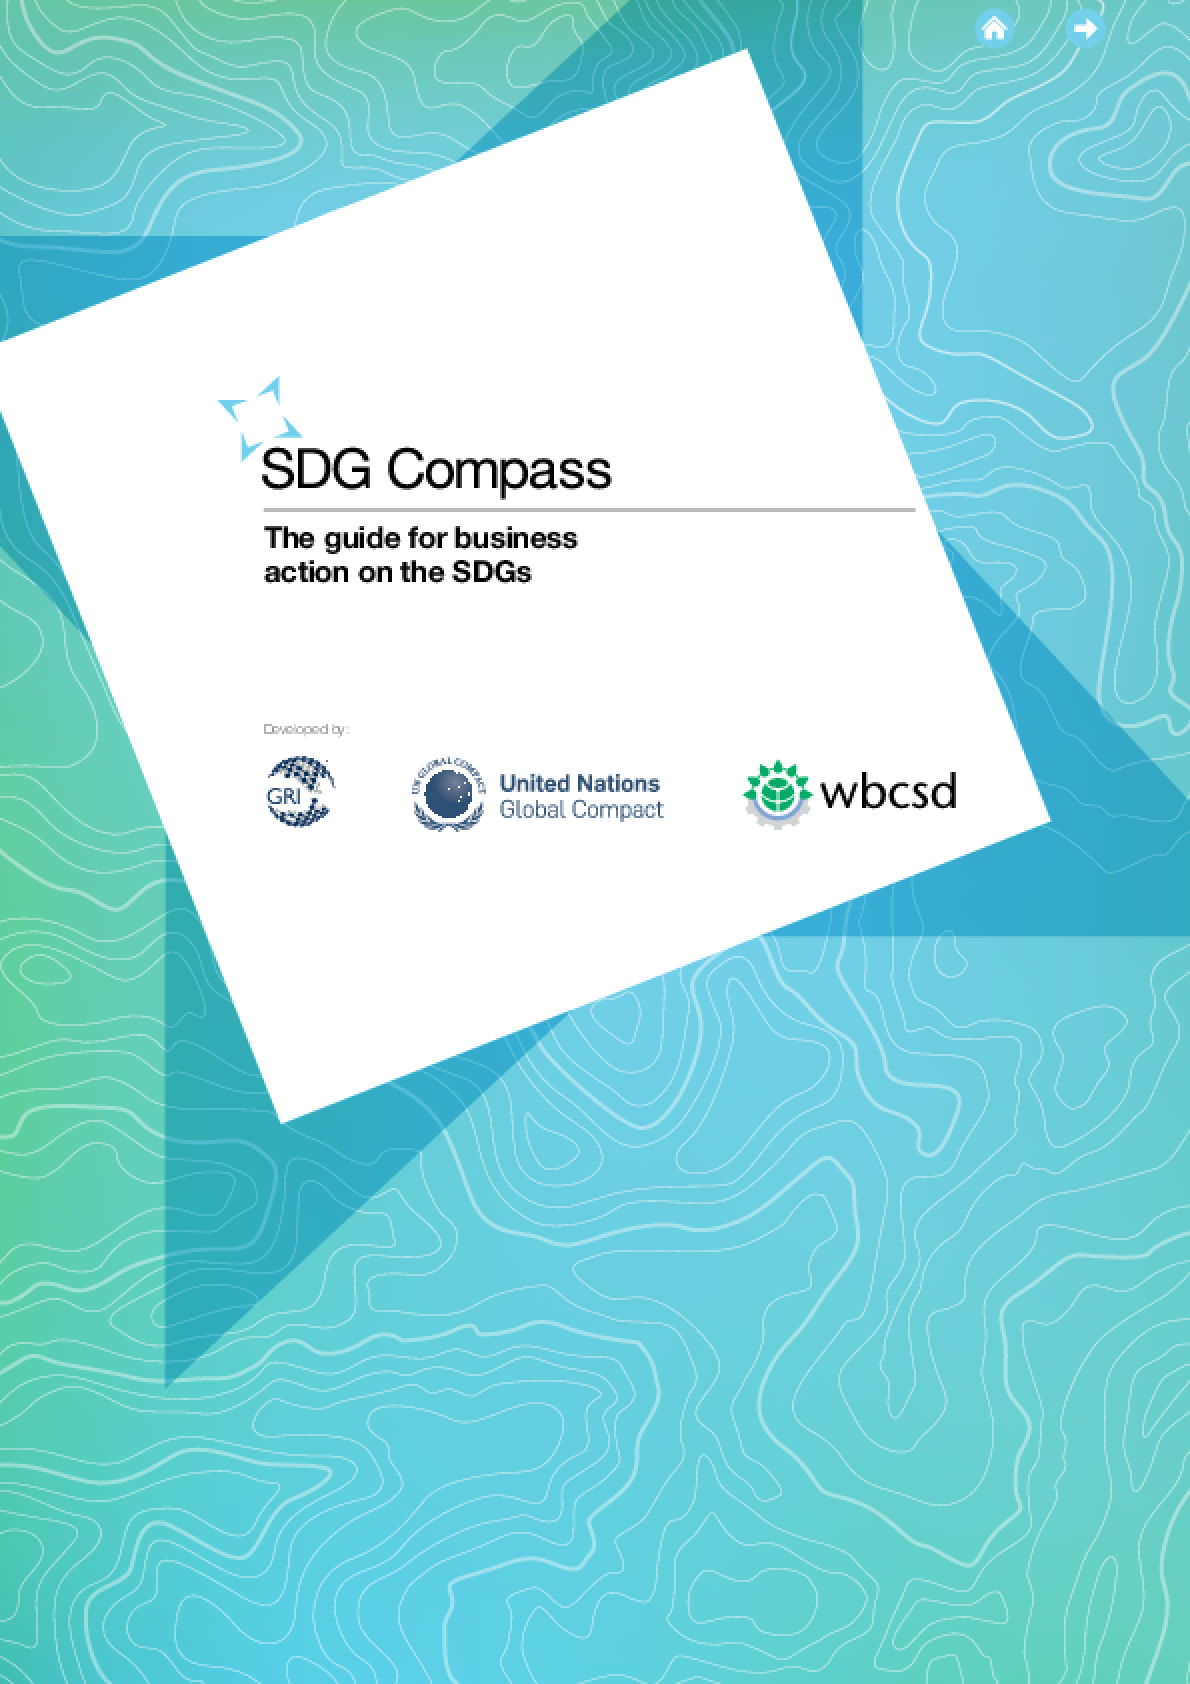 SDG Compass: the Guide for Business Action on the SDGs